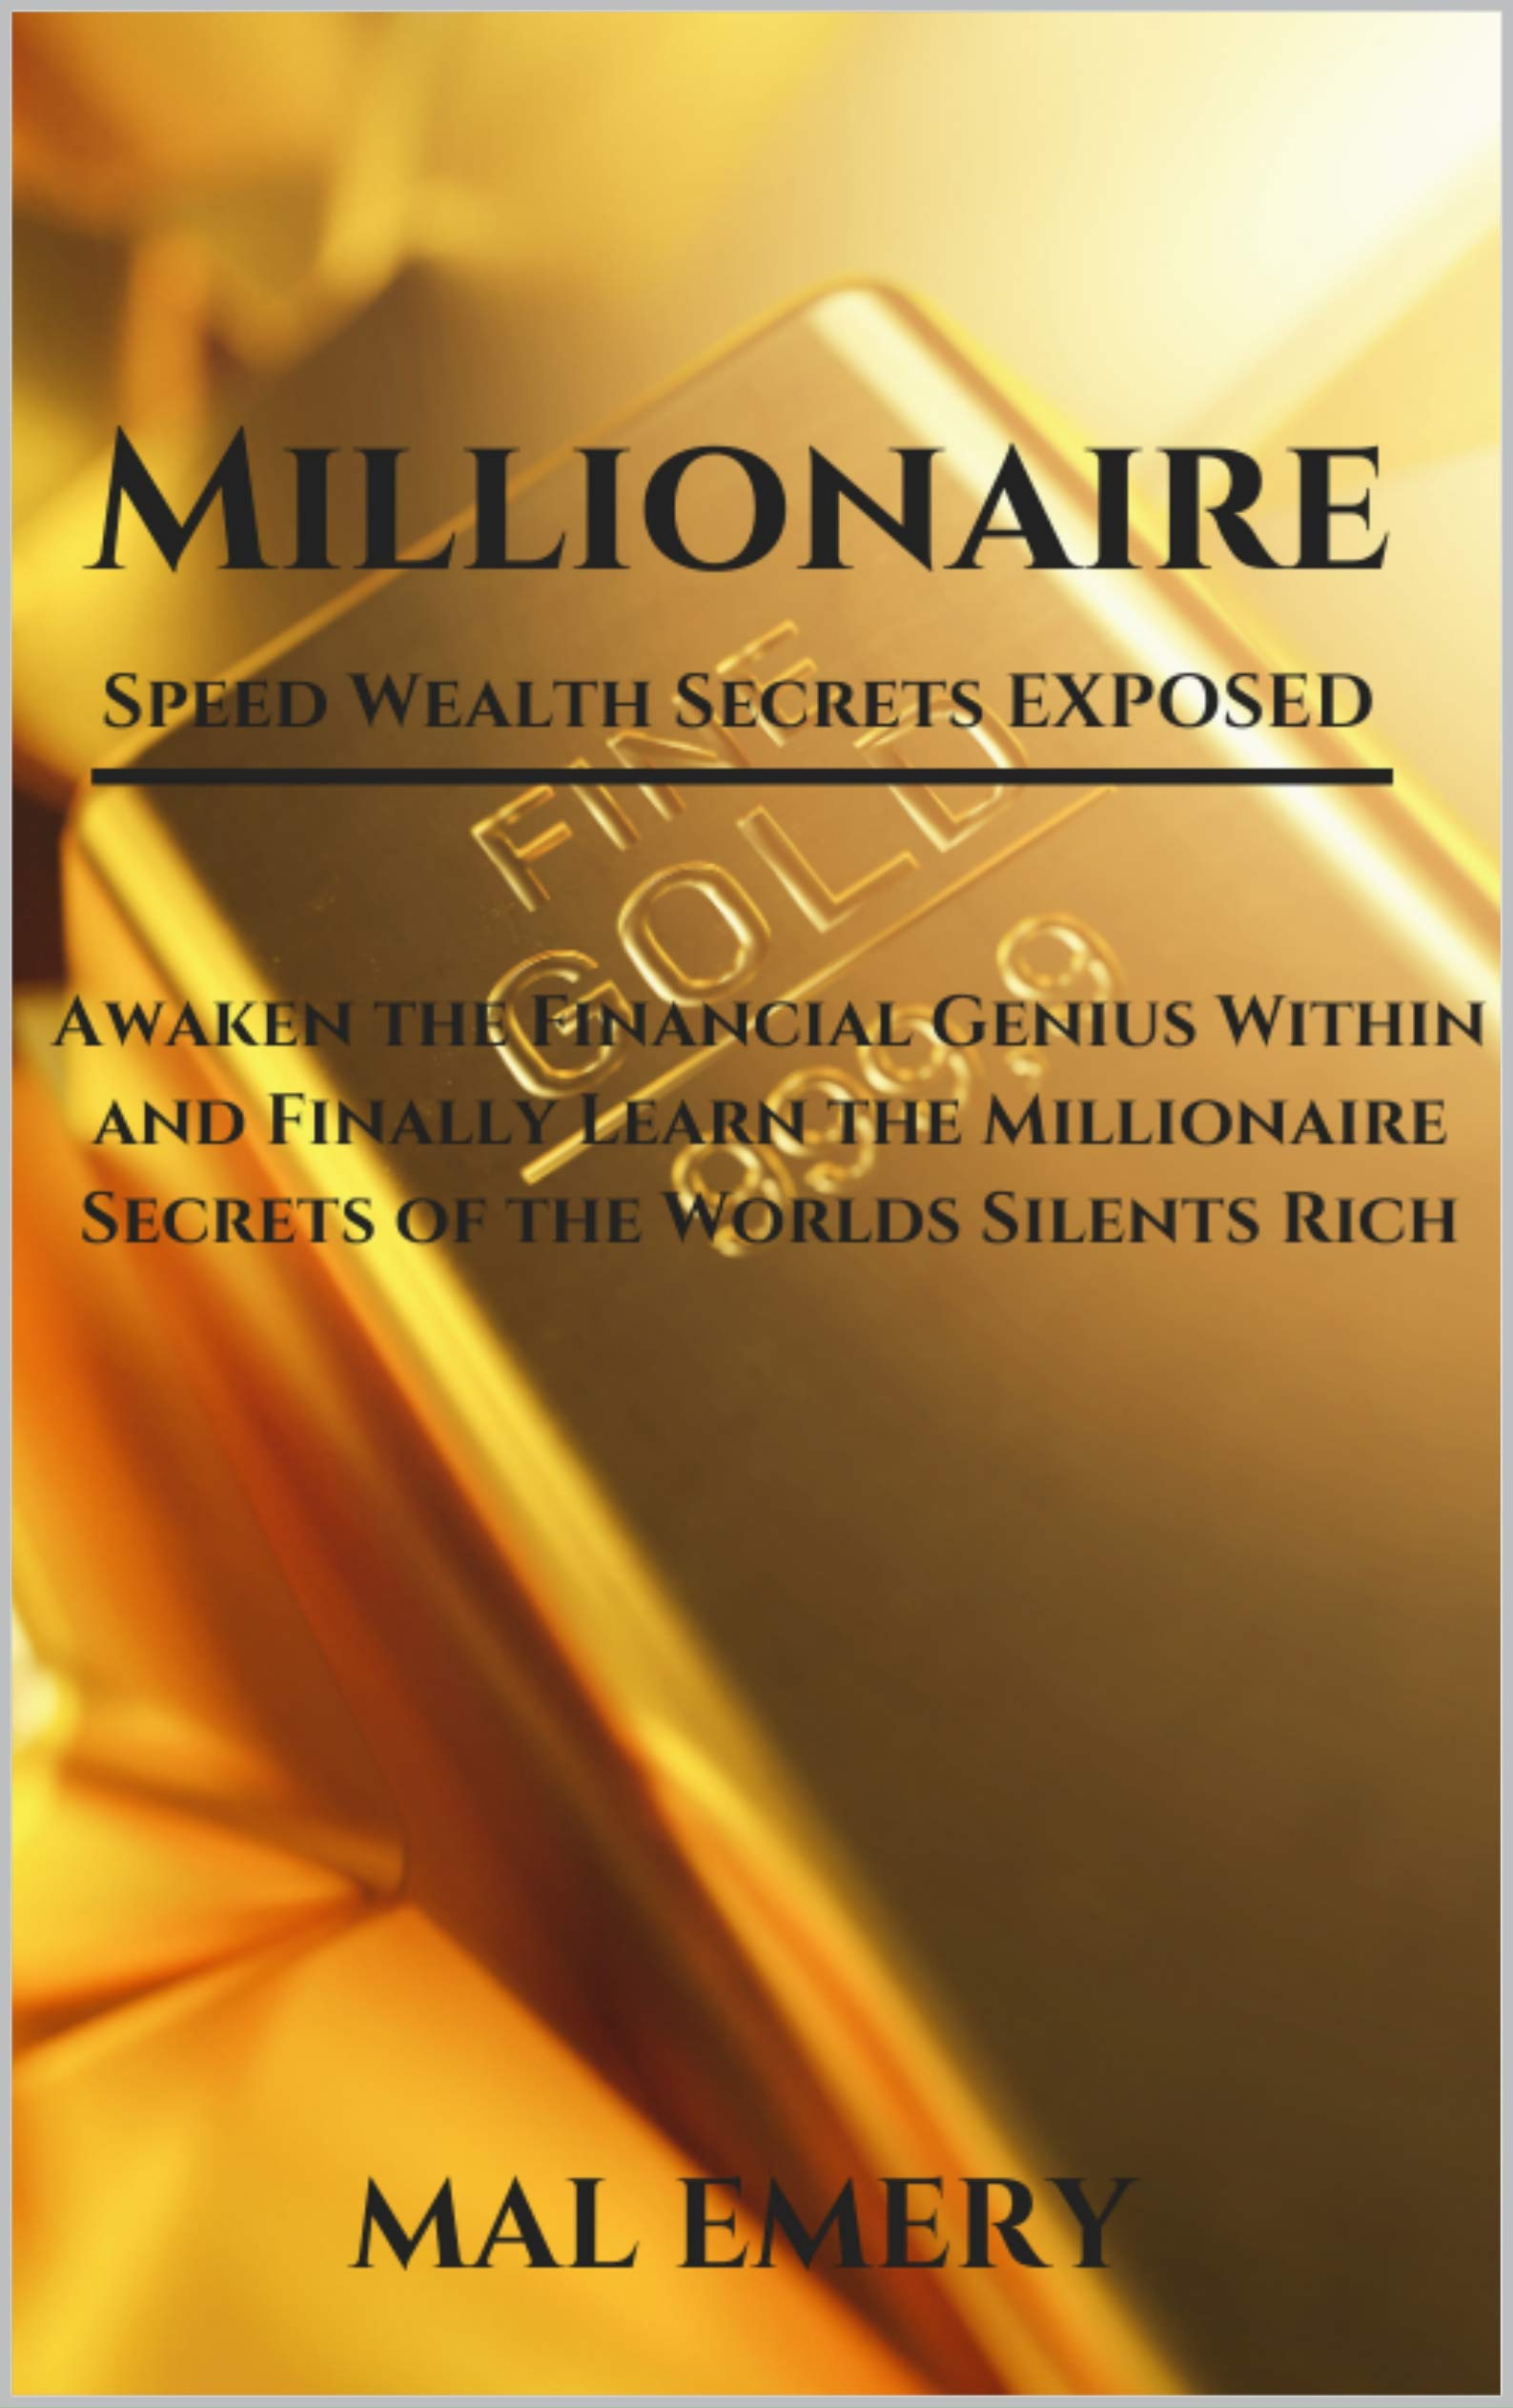 Millionaire, Speed Wealth Secrets Exposed: Awaken the Financial Genius Within and Finally Learn the Millionaire Secrets of the Worlds Silents Rich